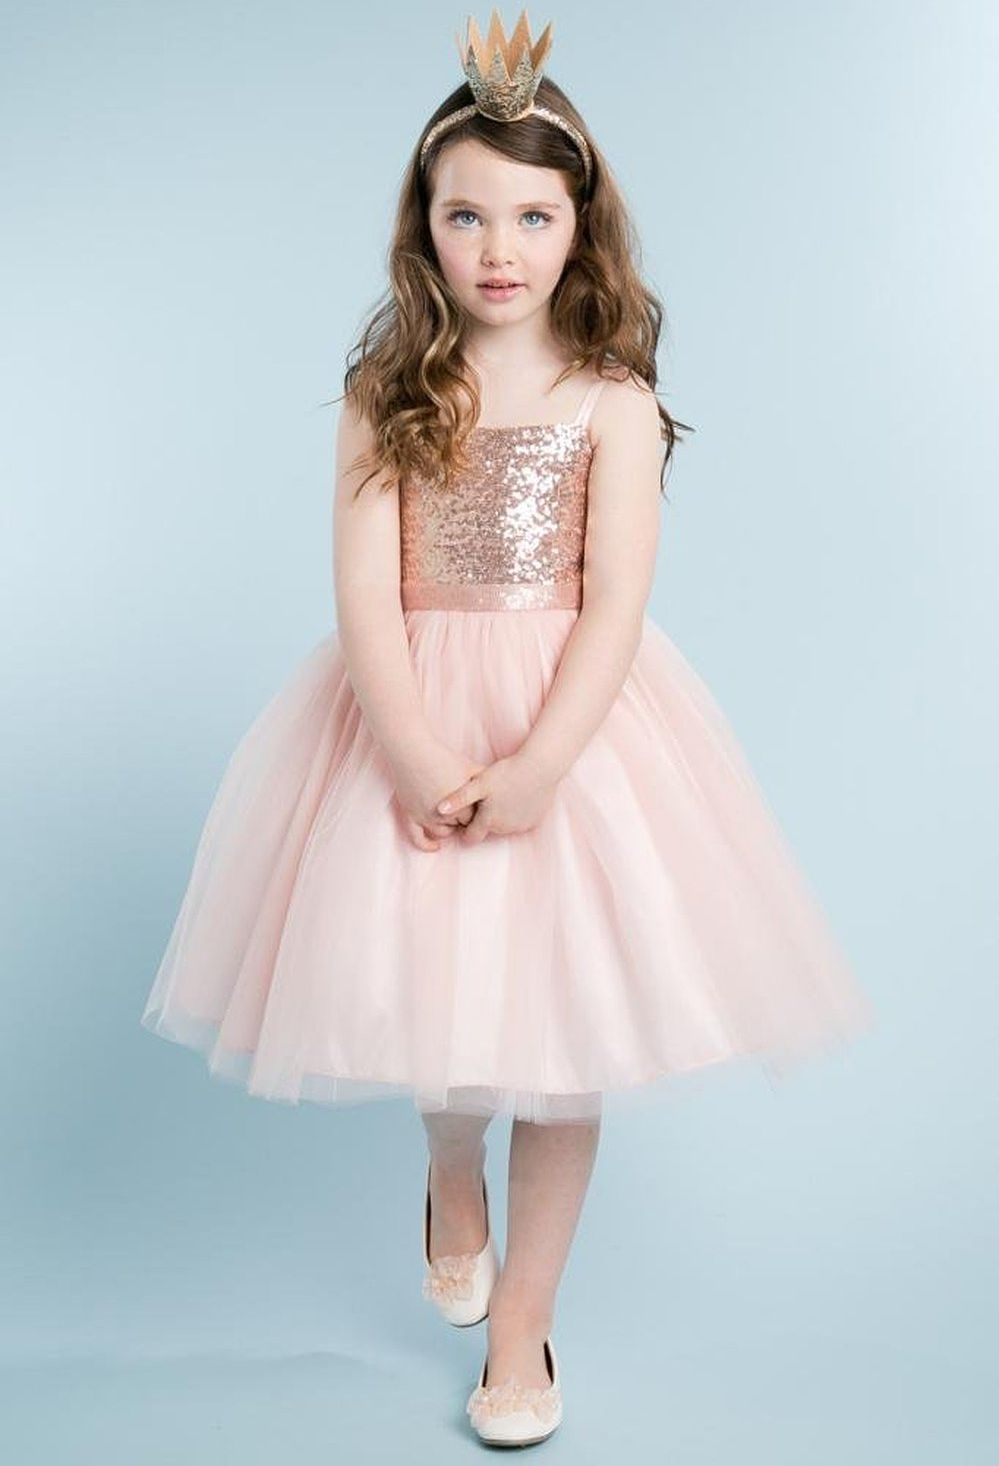 Fashion Flower Girl Dresses,Blush Color Flower Girls Gowns,Girl ...